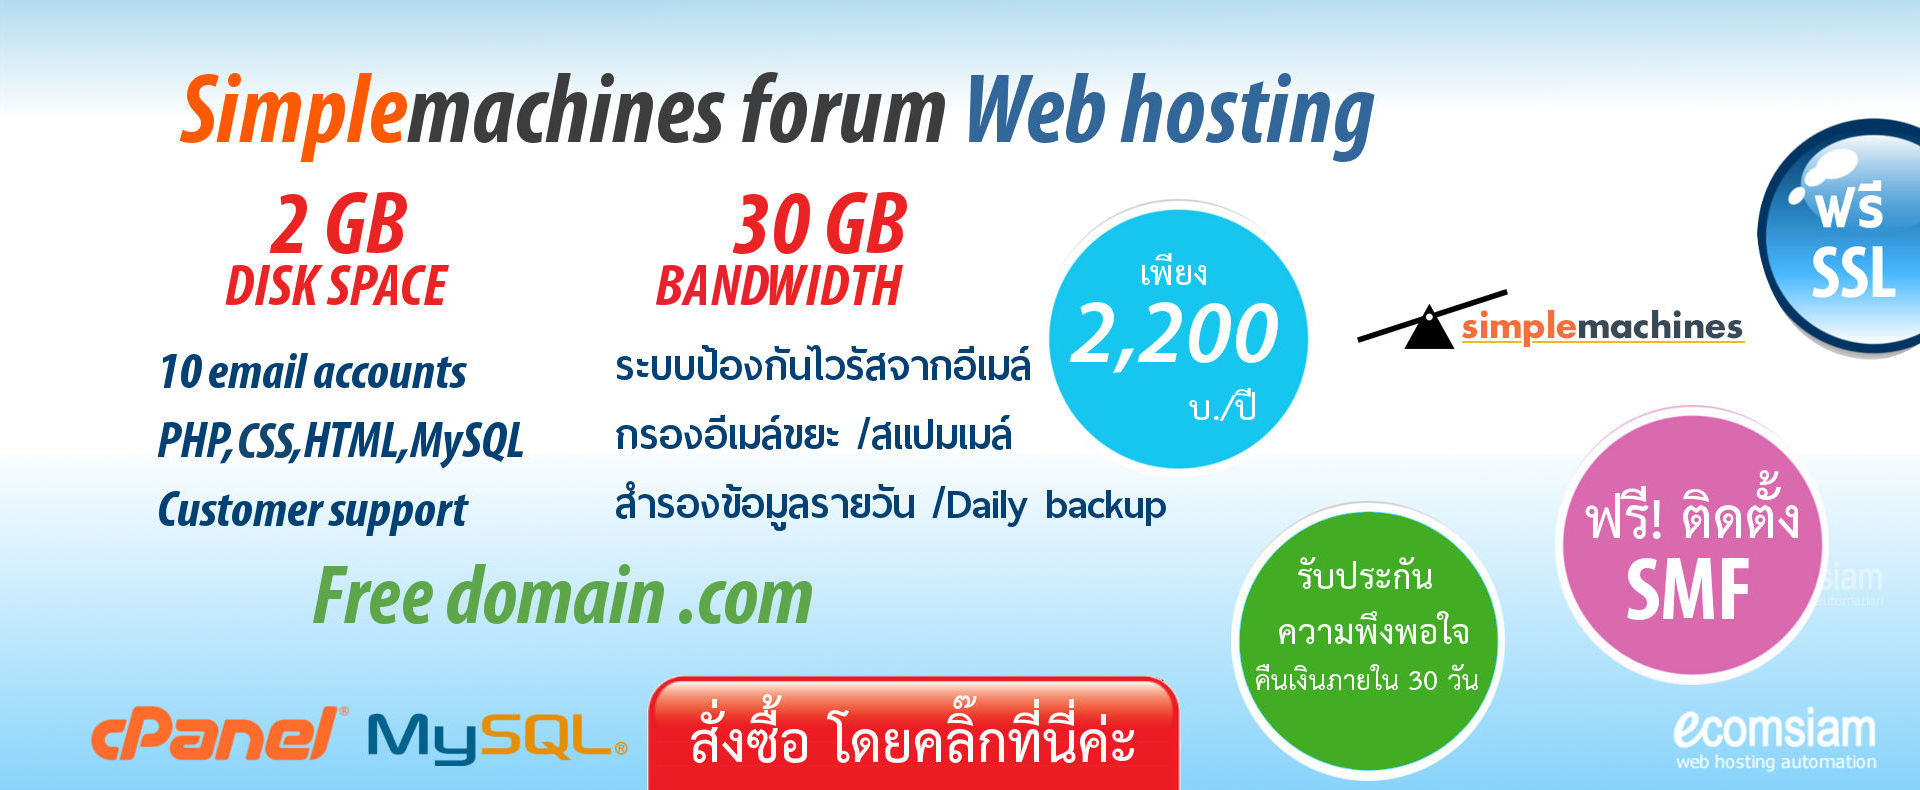 smf : simple machines forum web hosting thailand -เว็บโฮสติ้ง ฟรีโดเมน ฟรี SSL - web-hosting-thailand-free domain-smf : simple machines forum web hosting-banner